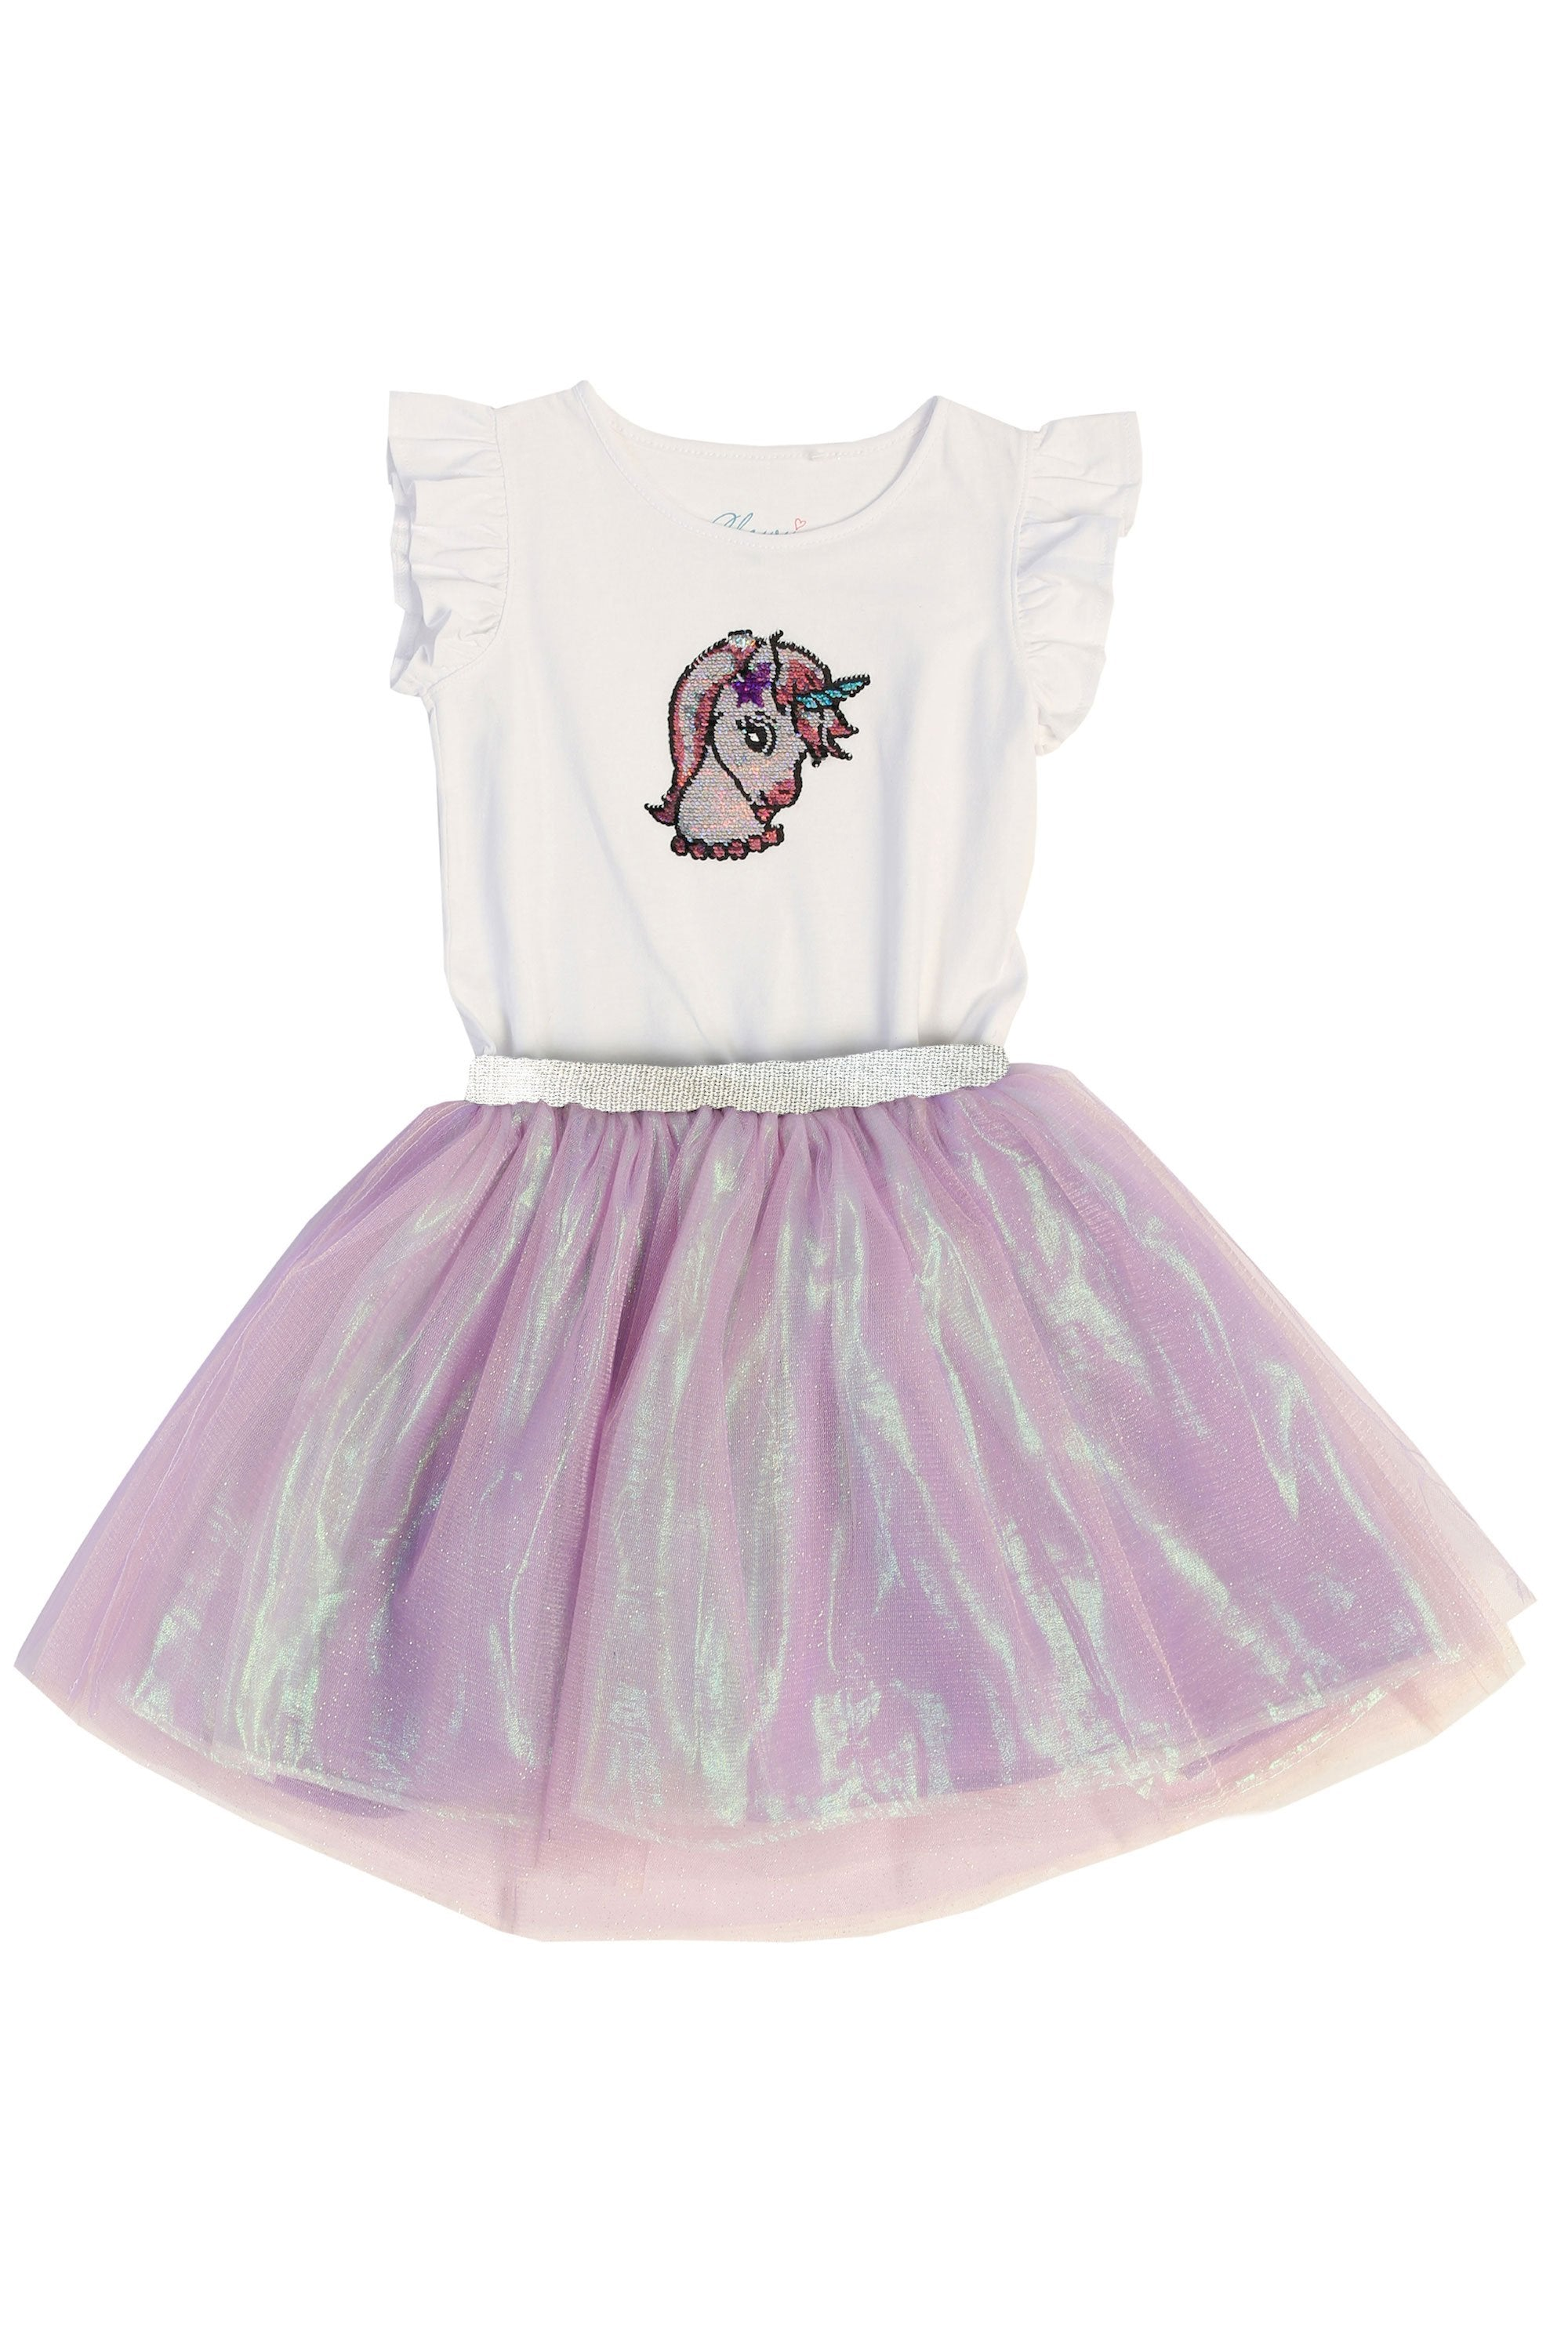 Unicorn Shirt + Tutu Skirt